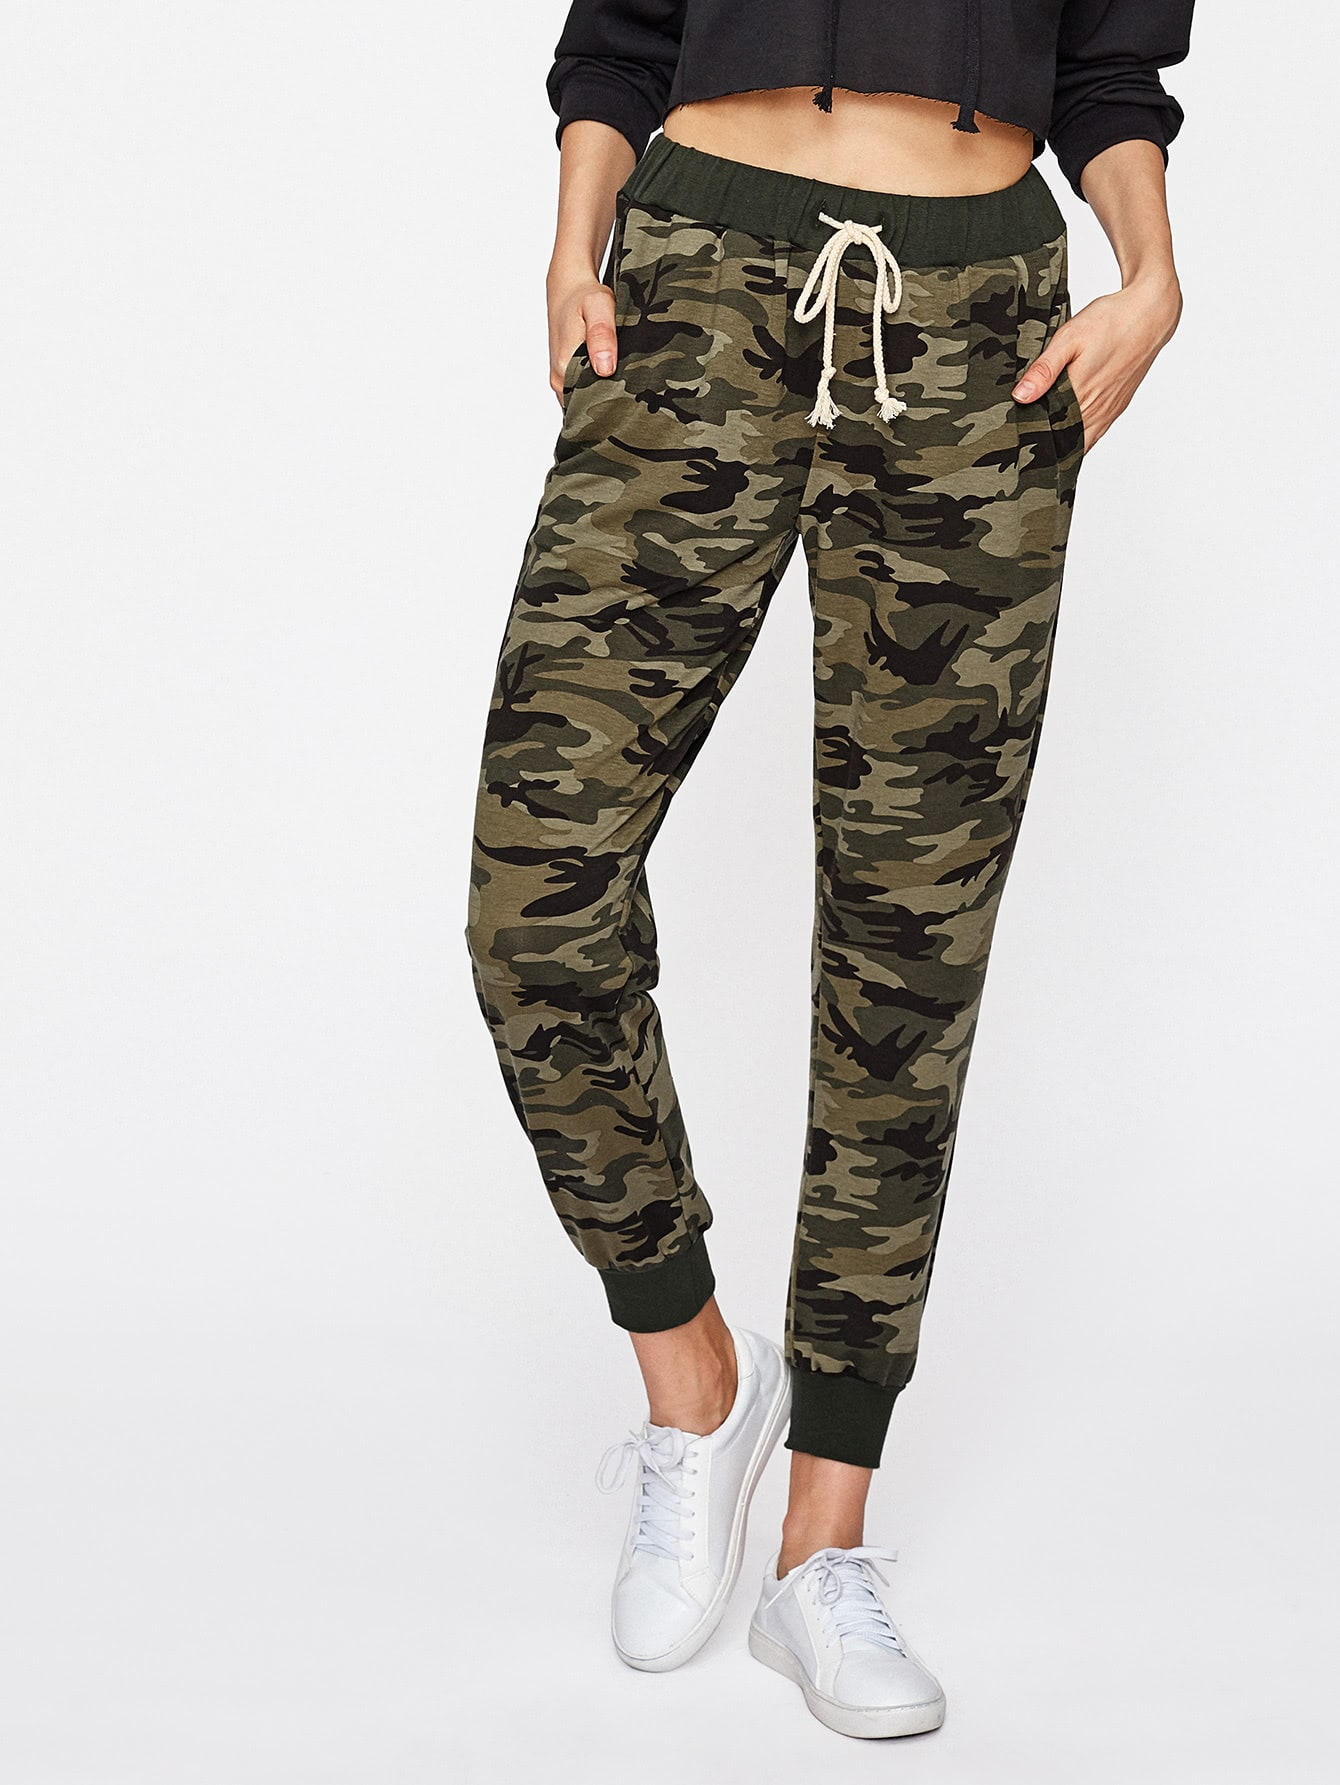 camouflage jeans damen damen army h ft stretch treggings leggings jeans in womens camo pants. Black Bedroom Furniture Sets. Home Design Ideas